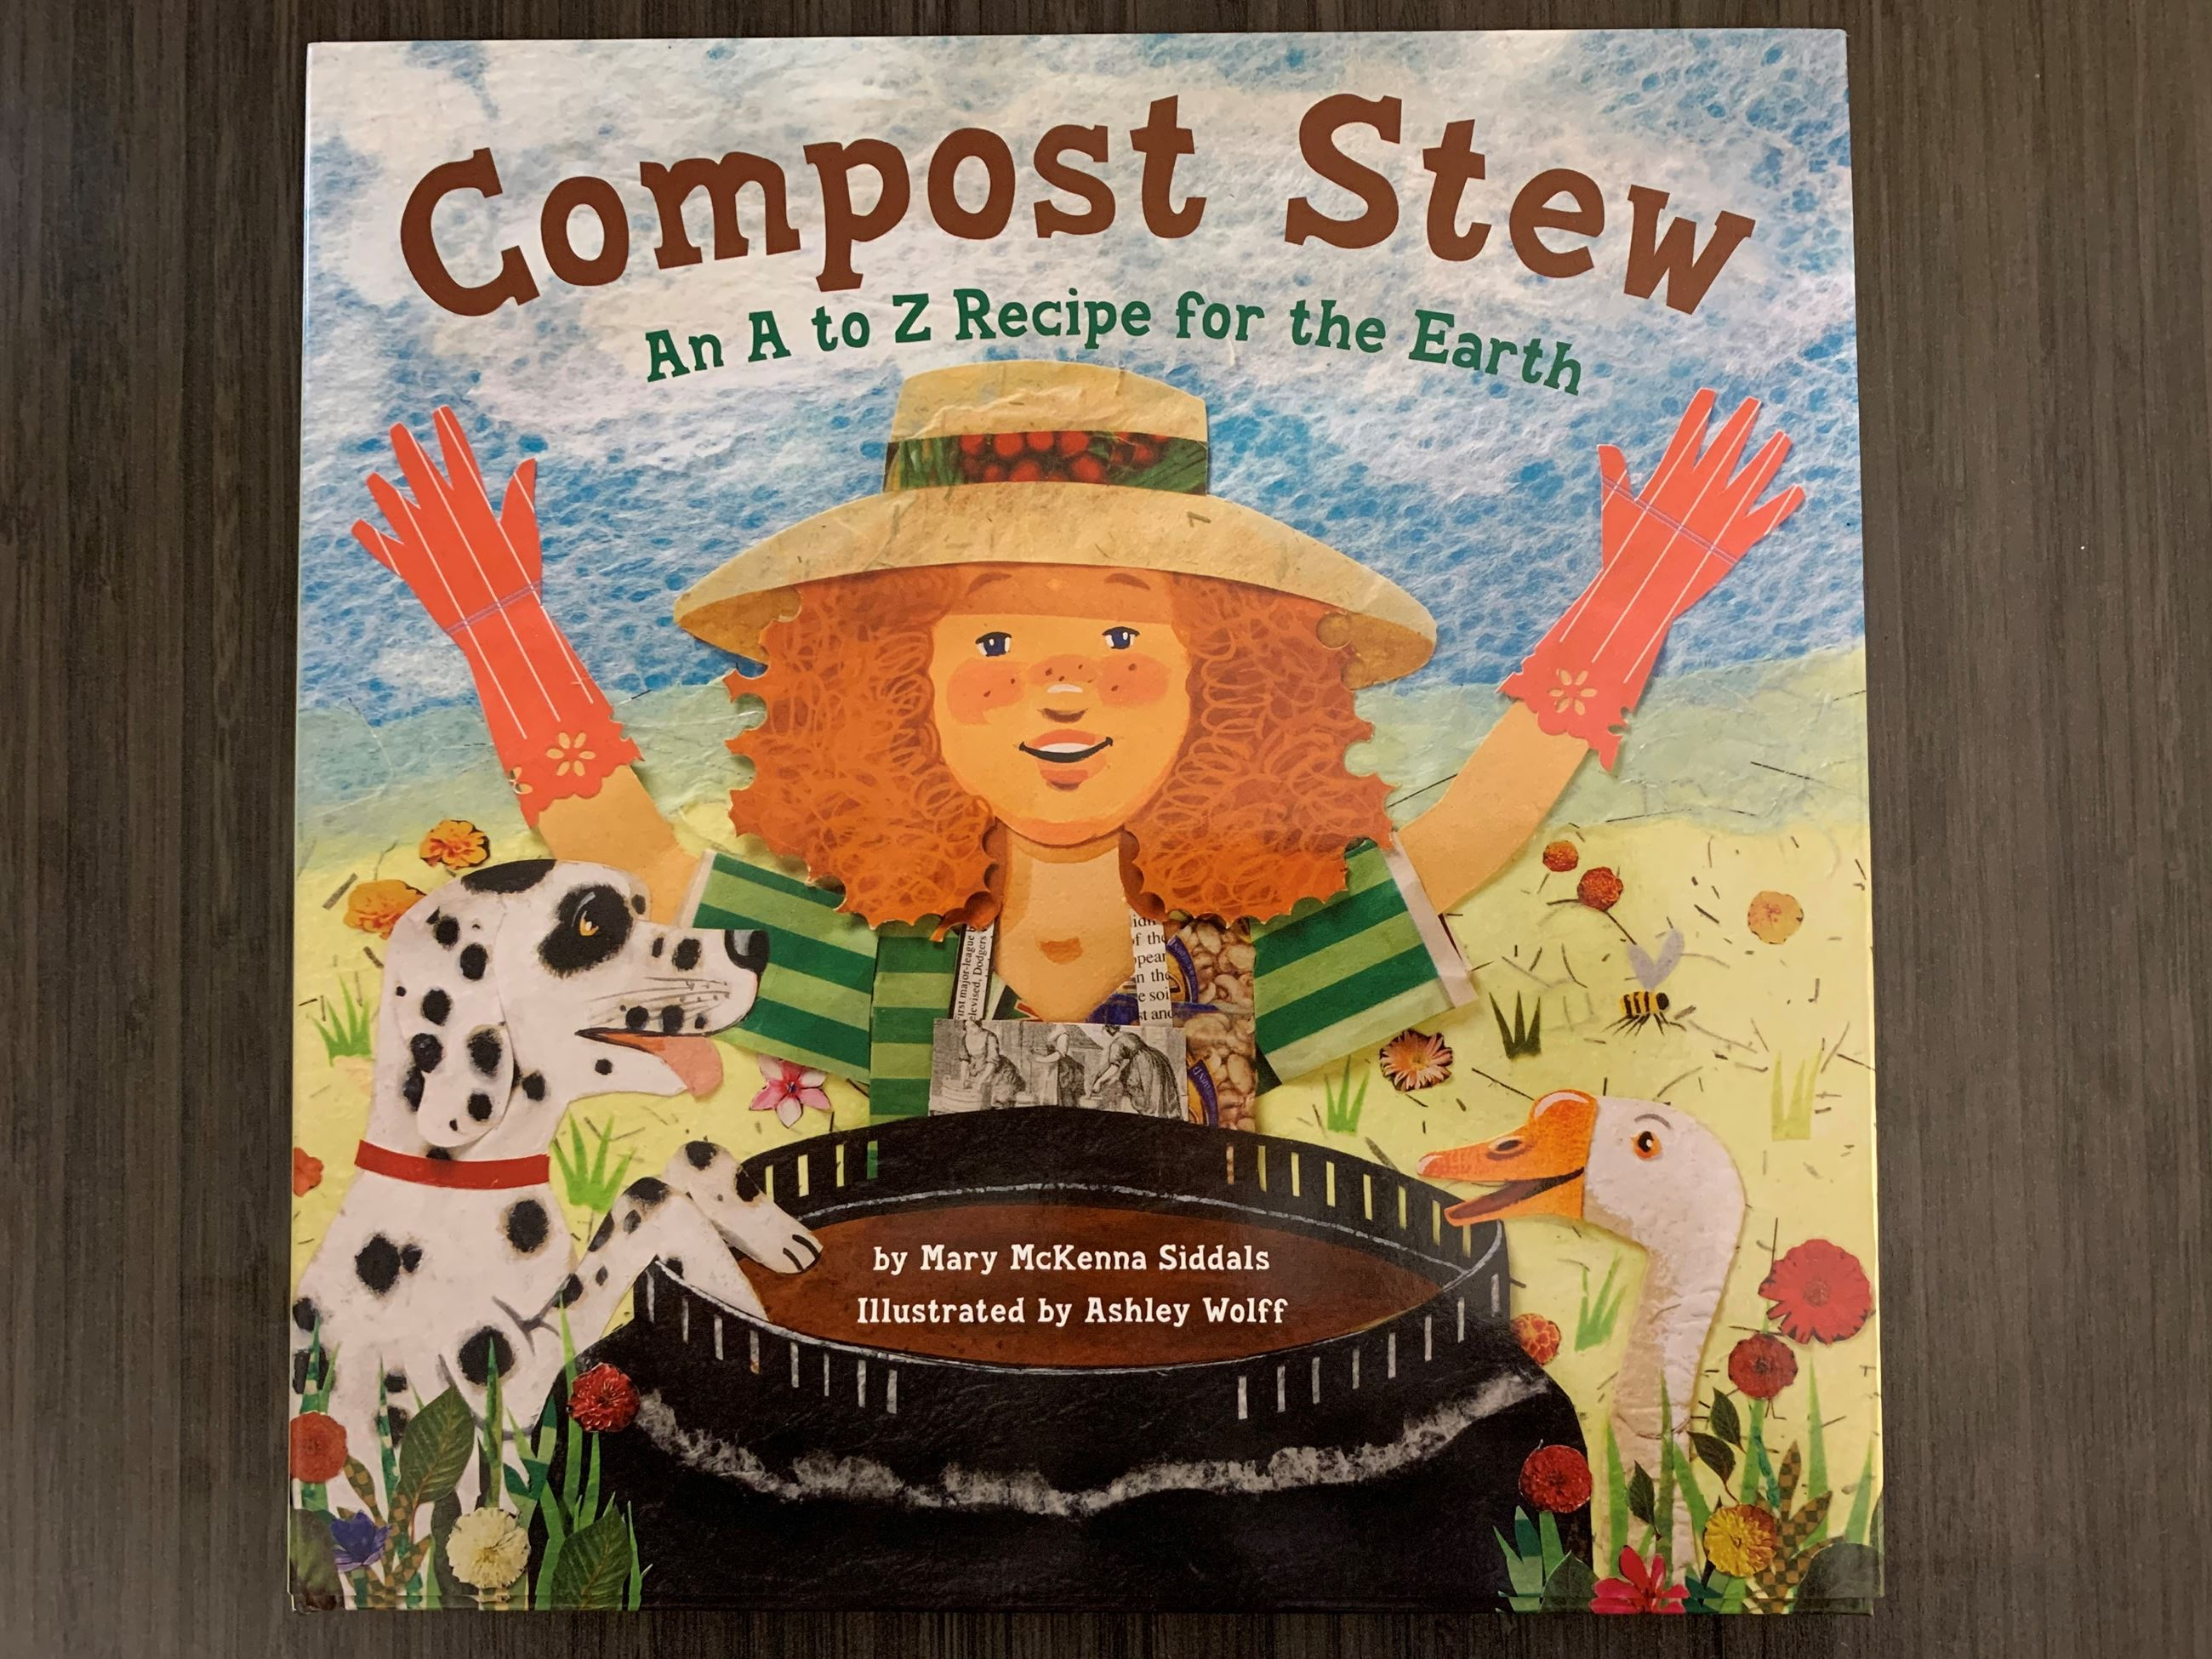 Book 12 - Compost Stew